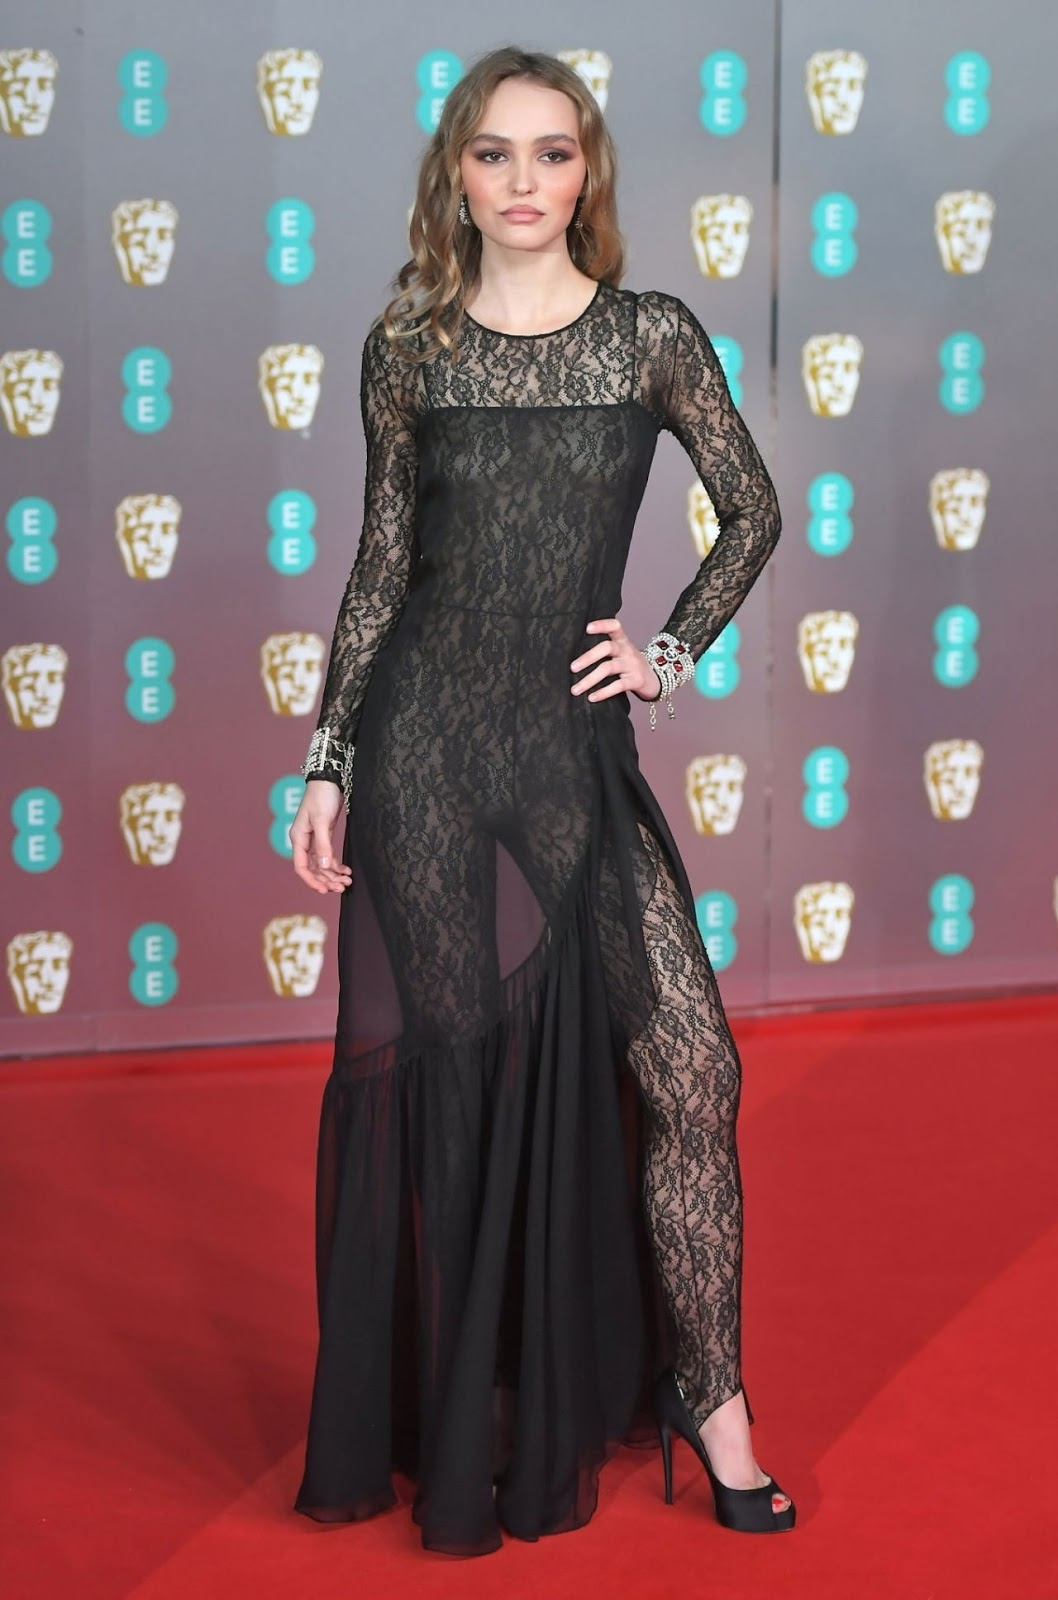 Lily Rose Depp goes braless underneath sheer jumpsuit at the 2020 BAFTAs